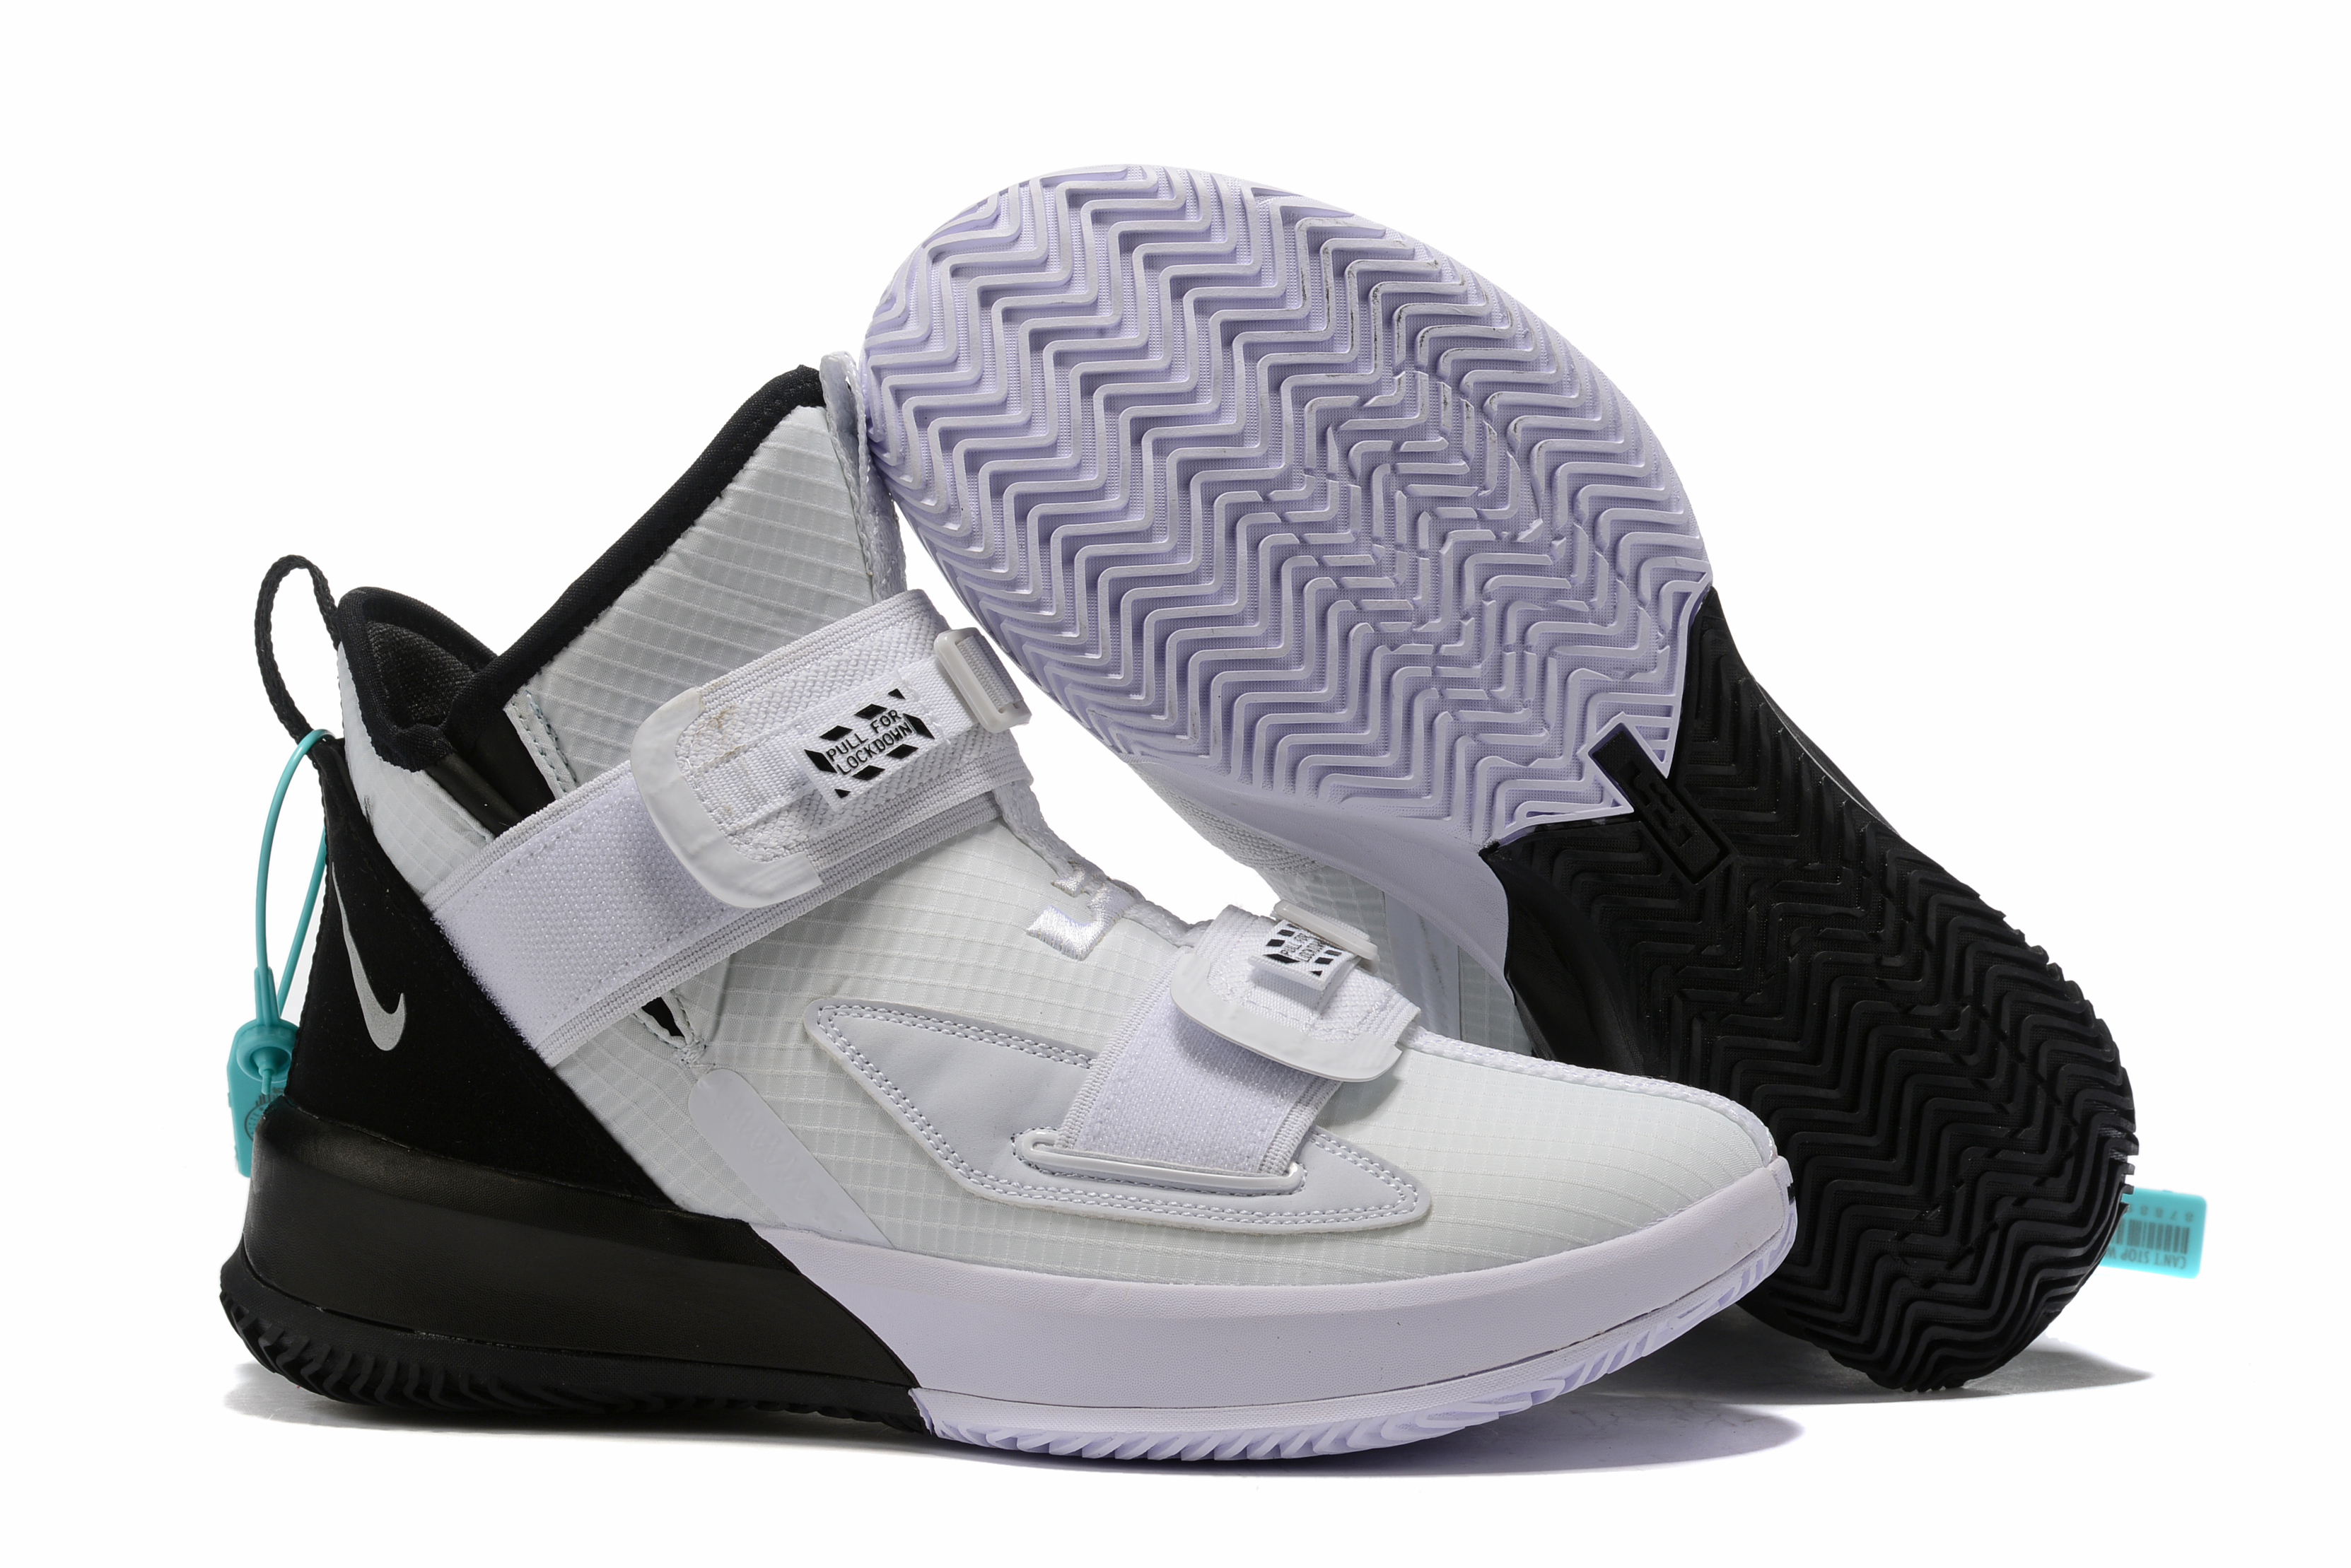 reputable site 1f8e6 74c45 Jame Soldier 13-001 Shoes - $52.00 :